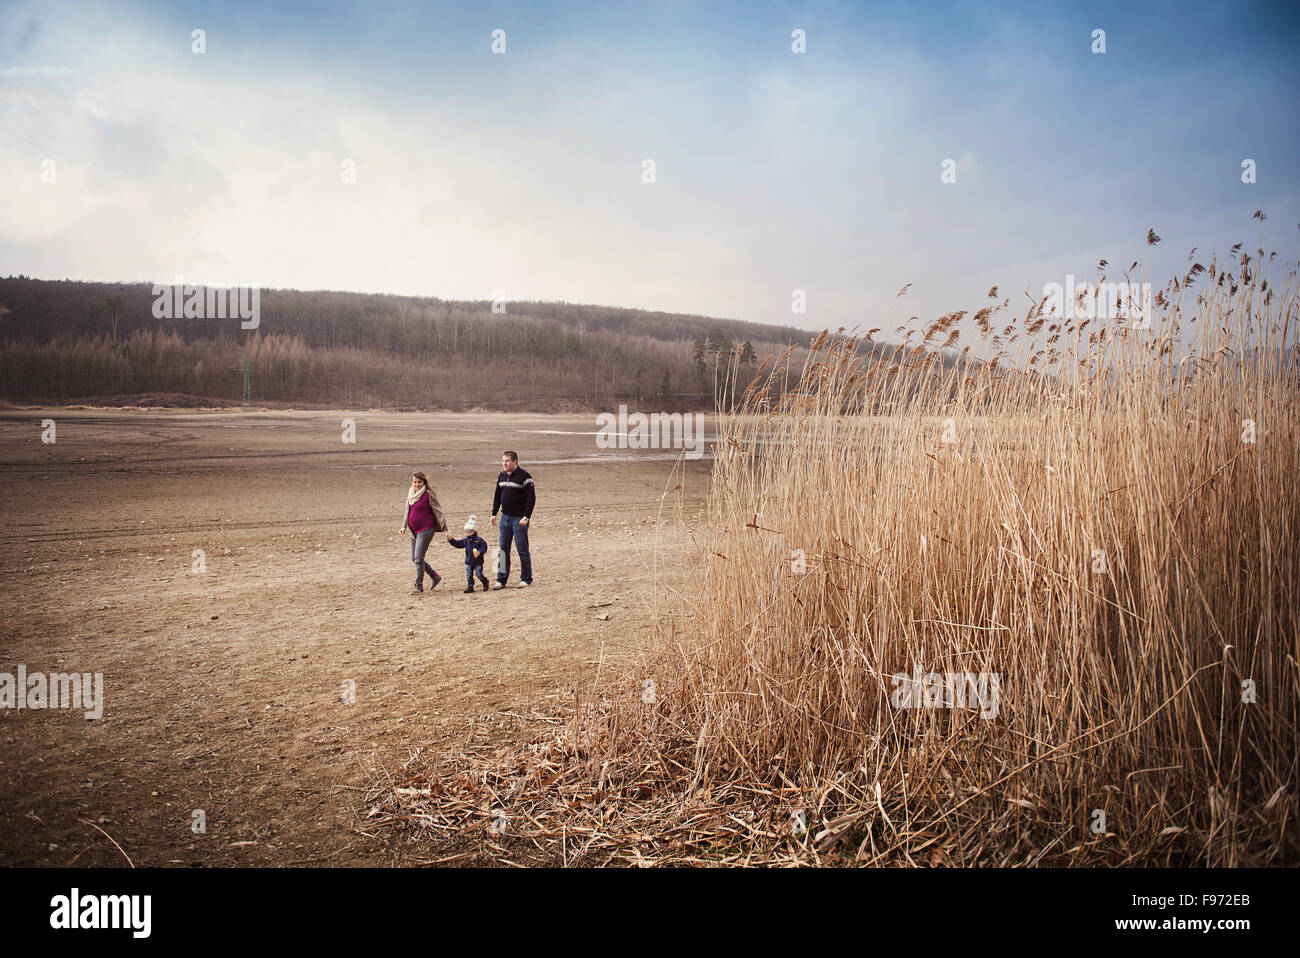 Happy young family spending time together in nature. Stock Photo